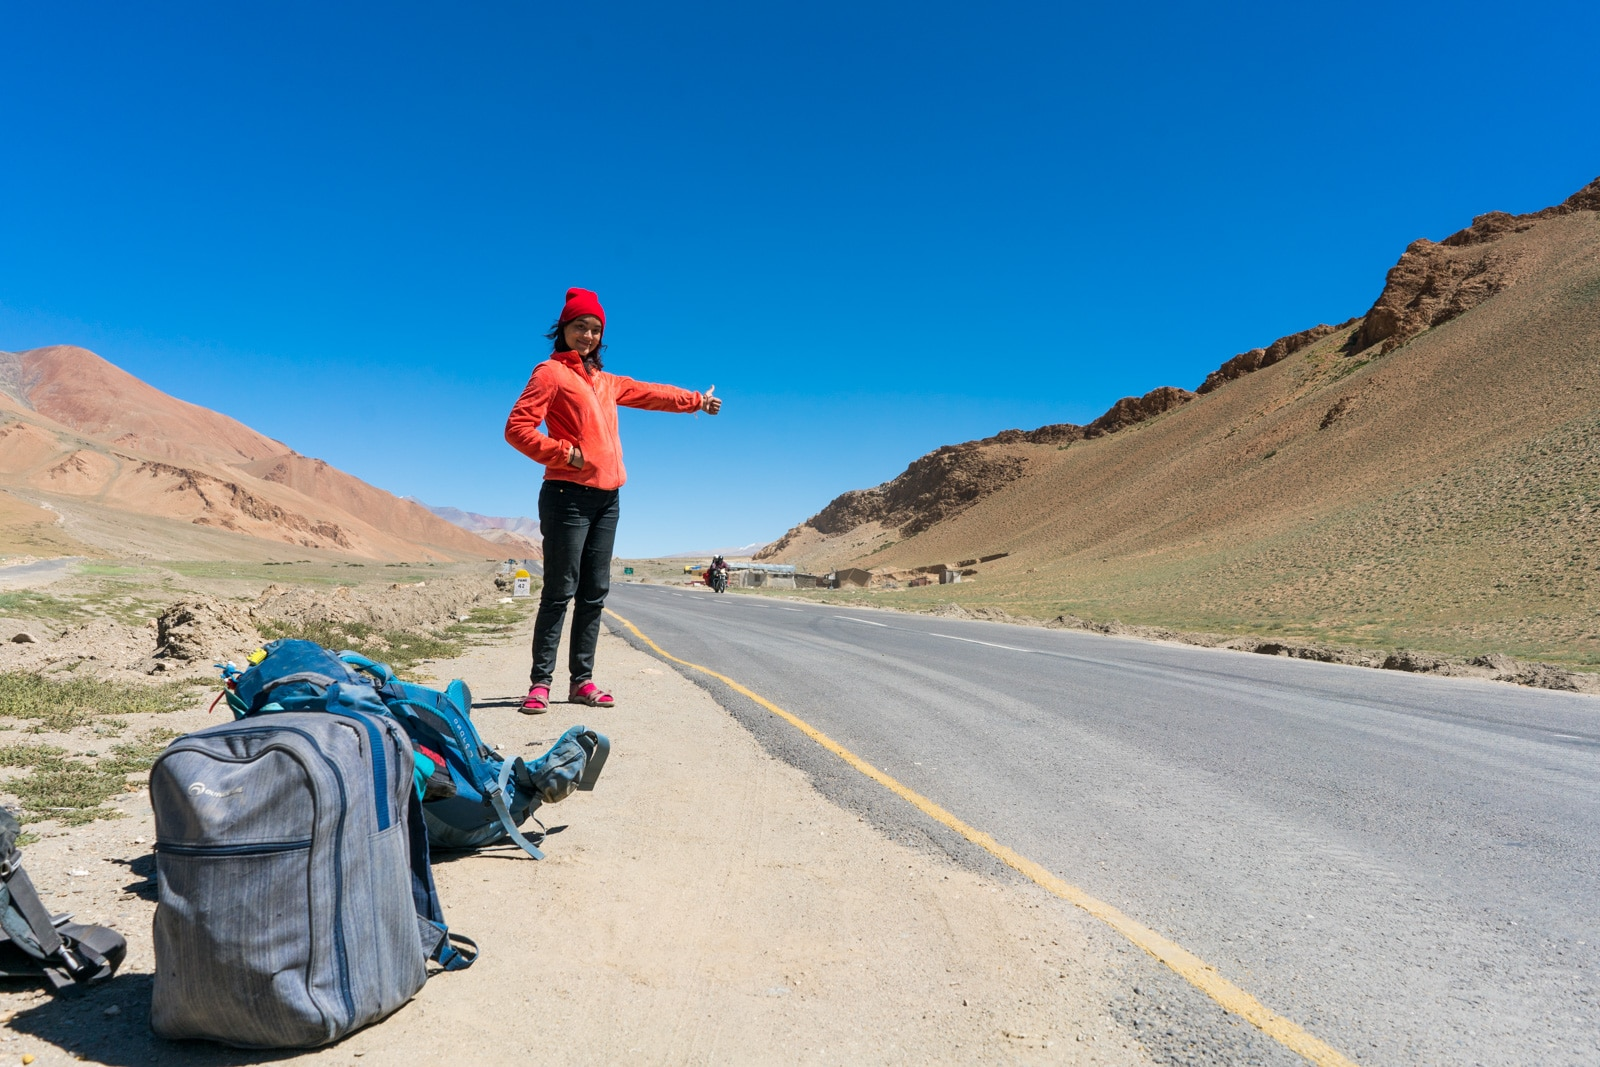 Alex hitchhiking the Leh - Manali highway in India - Lost With Purpose travel blog